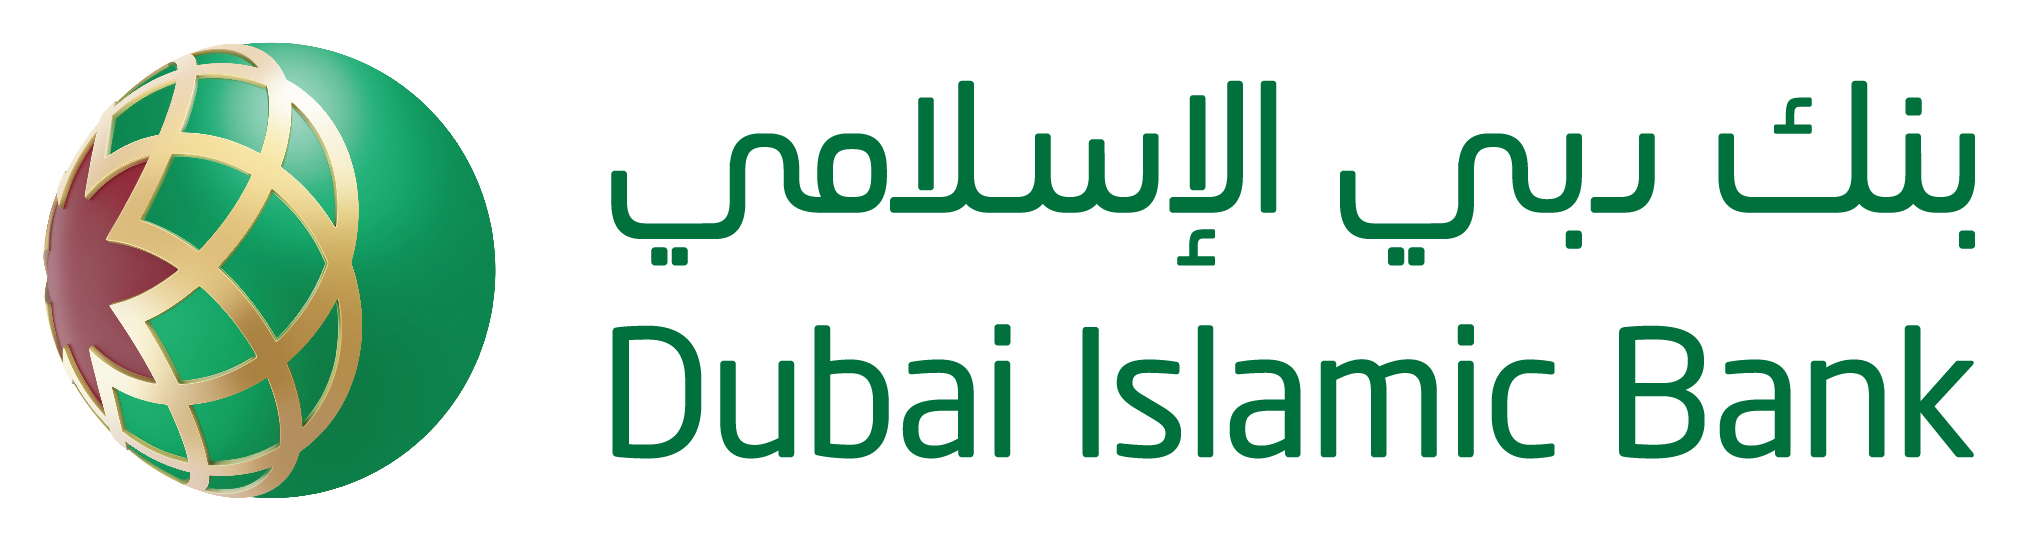 Dubai Islamic Bank - Shaatir Savings Account